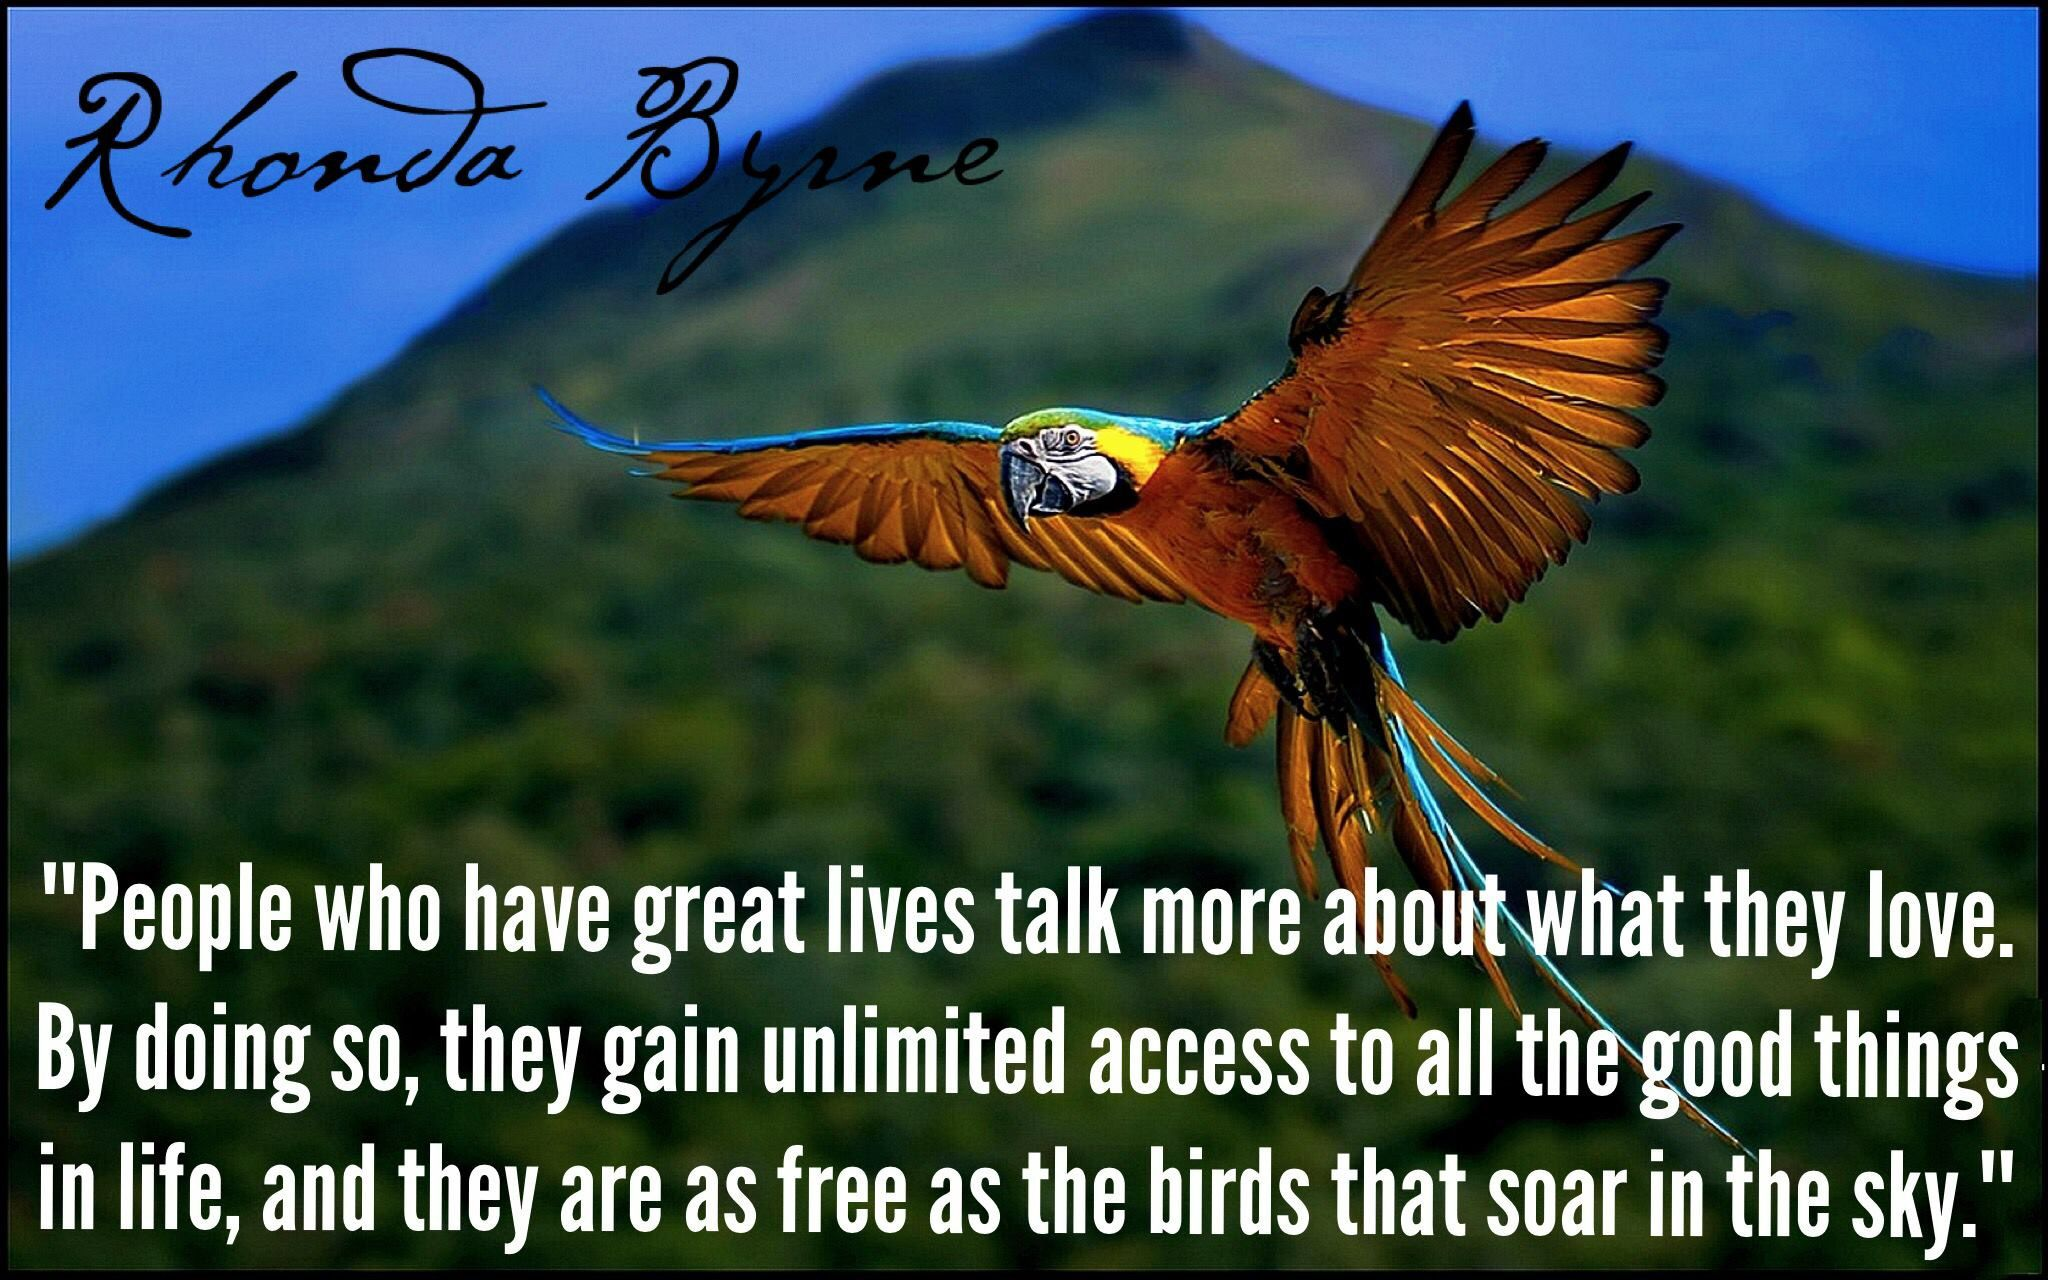 If You Parrot Negative Things And Squawk About The Things You Don T Love You Are Literally Jailing Yourself Like Great Life The Secret Book Series Pet Birds